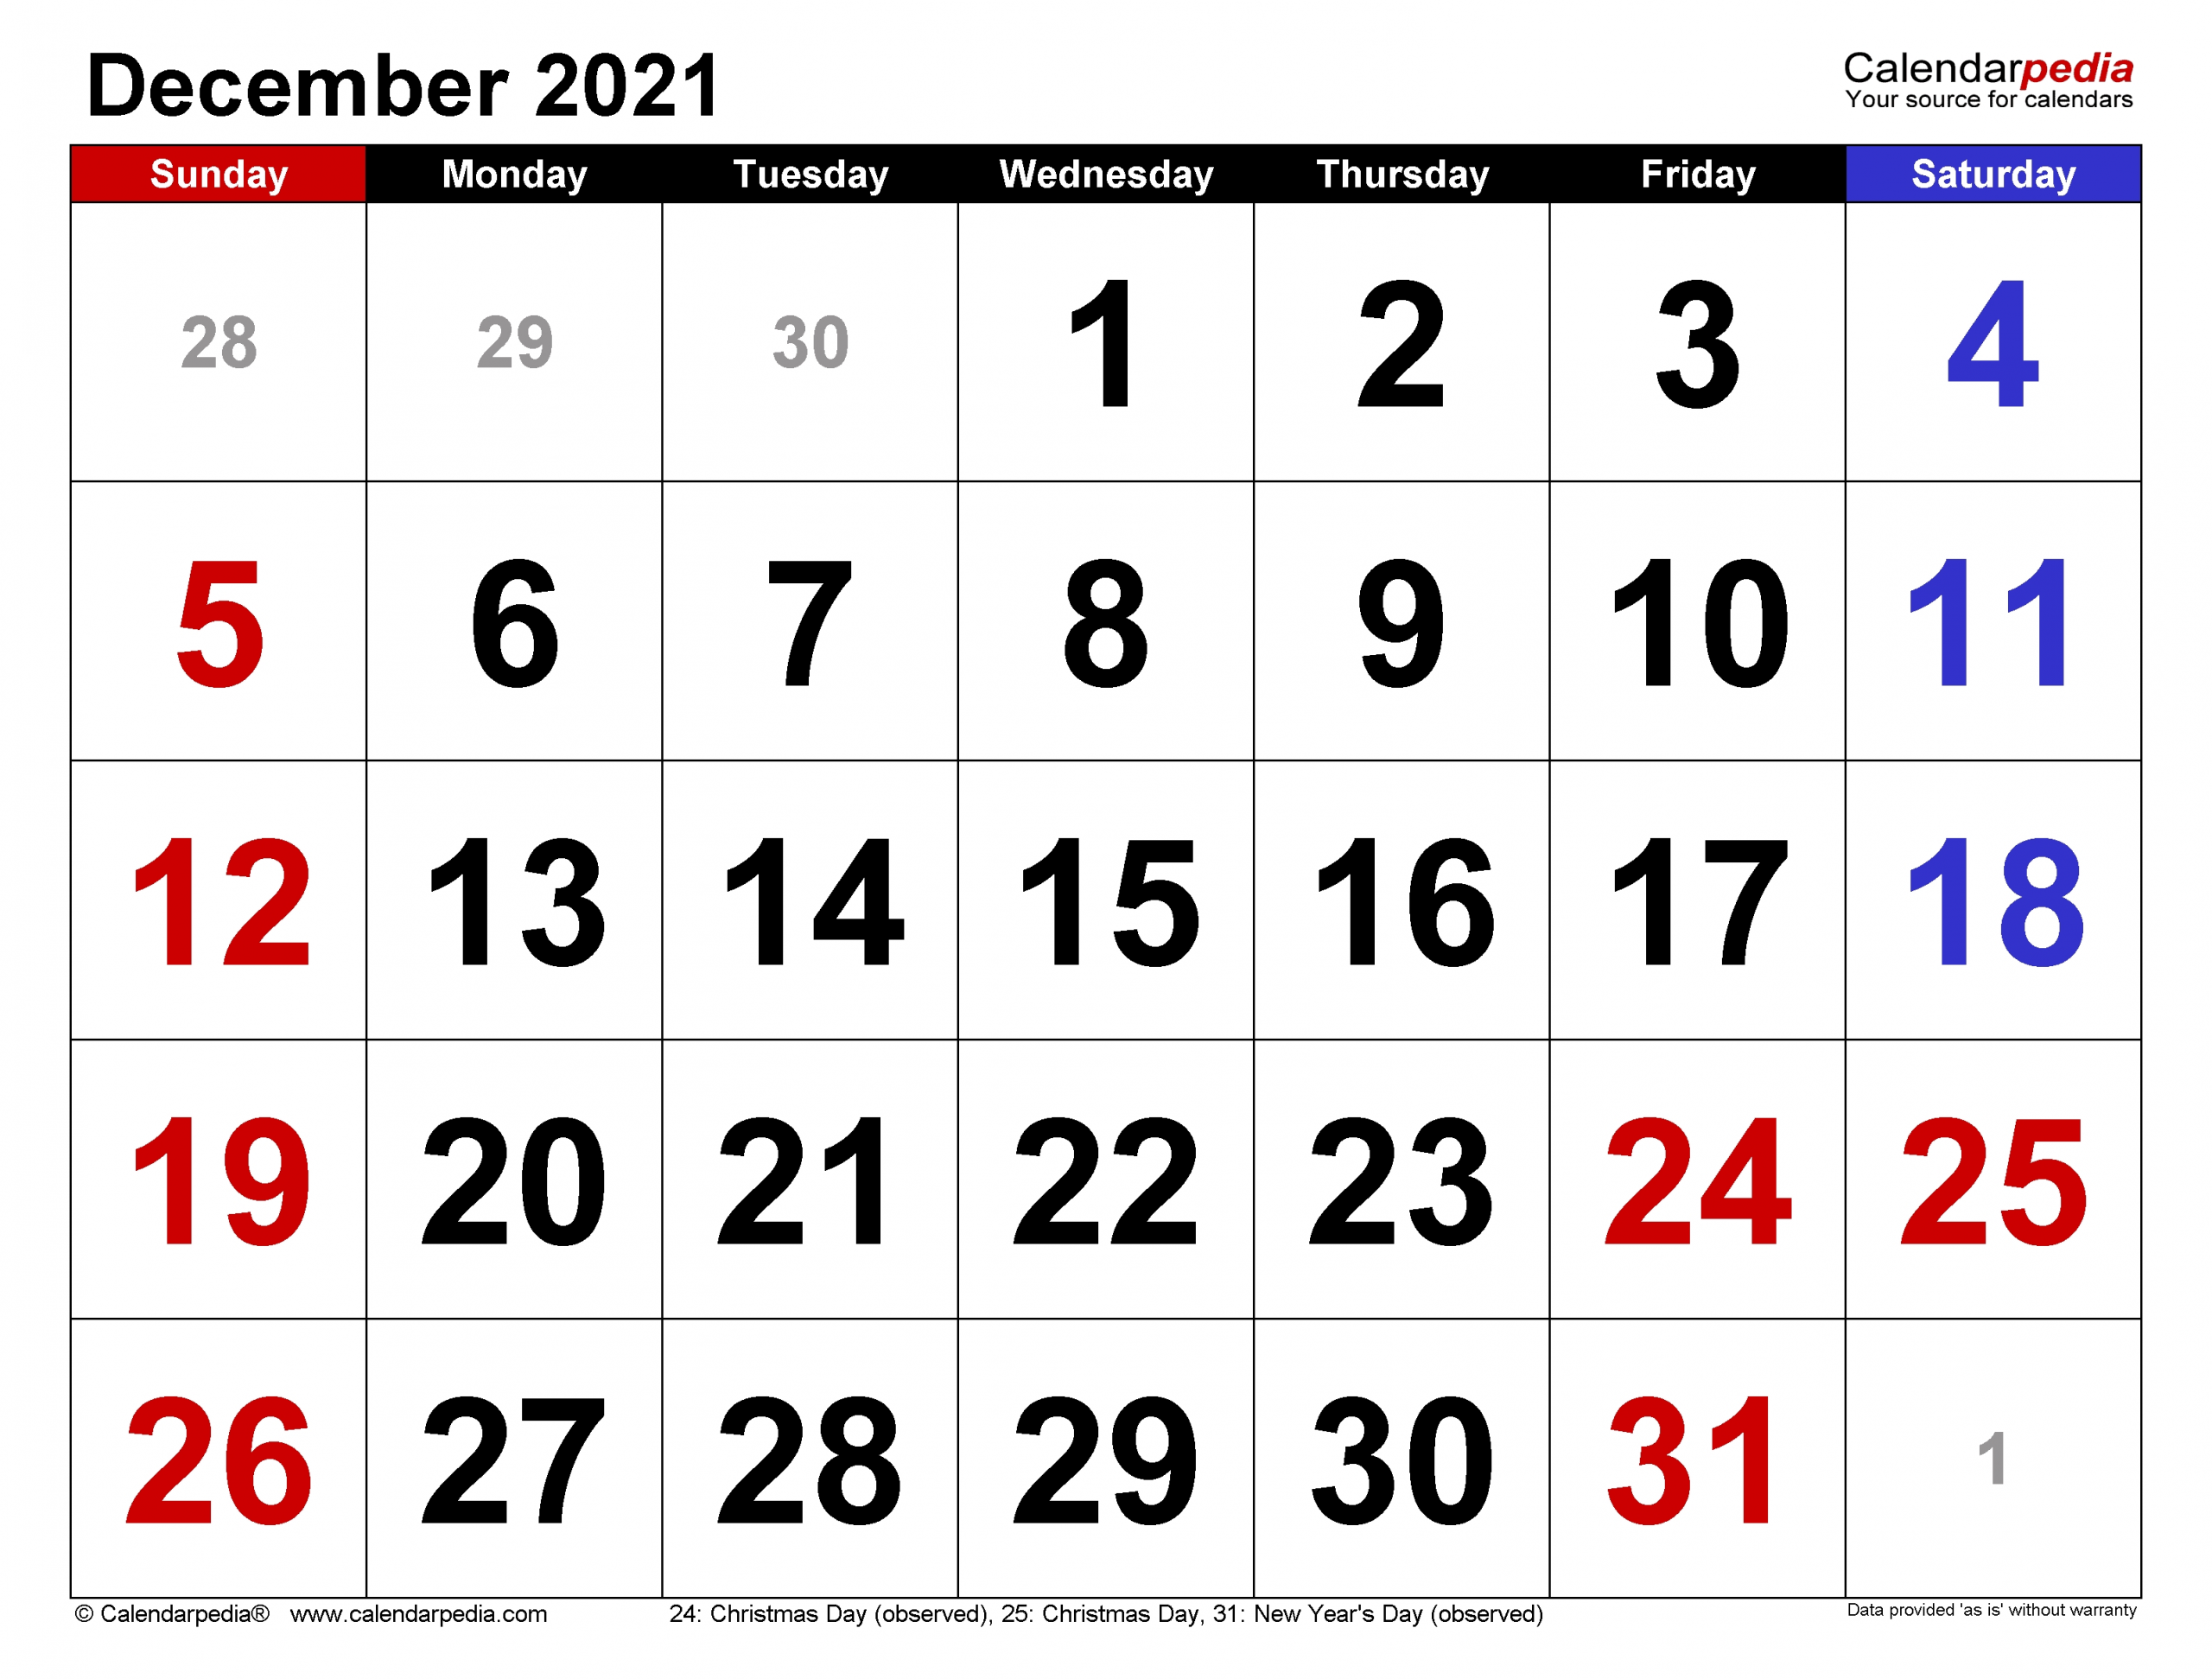 Take Decembers Calender For 2021